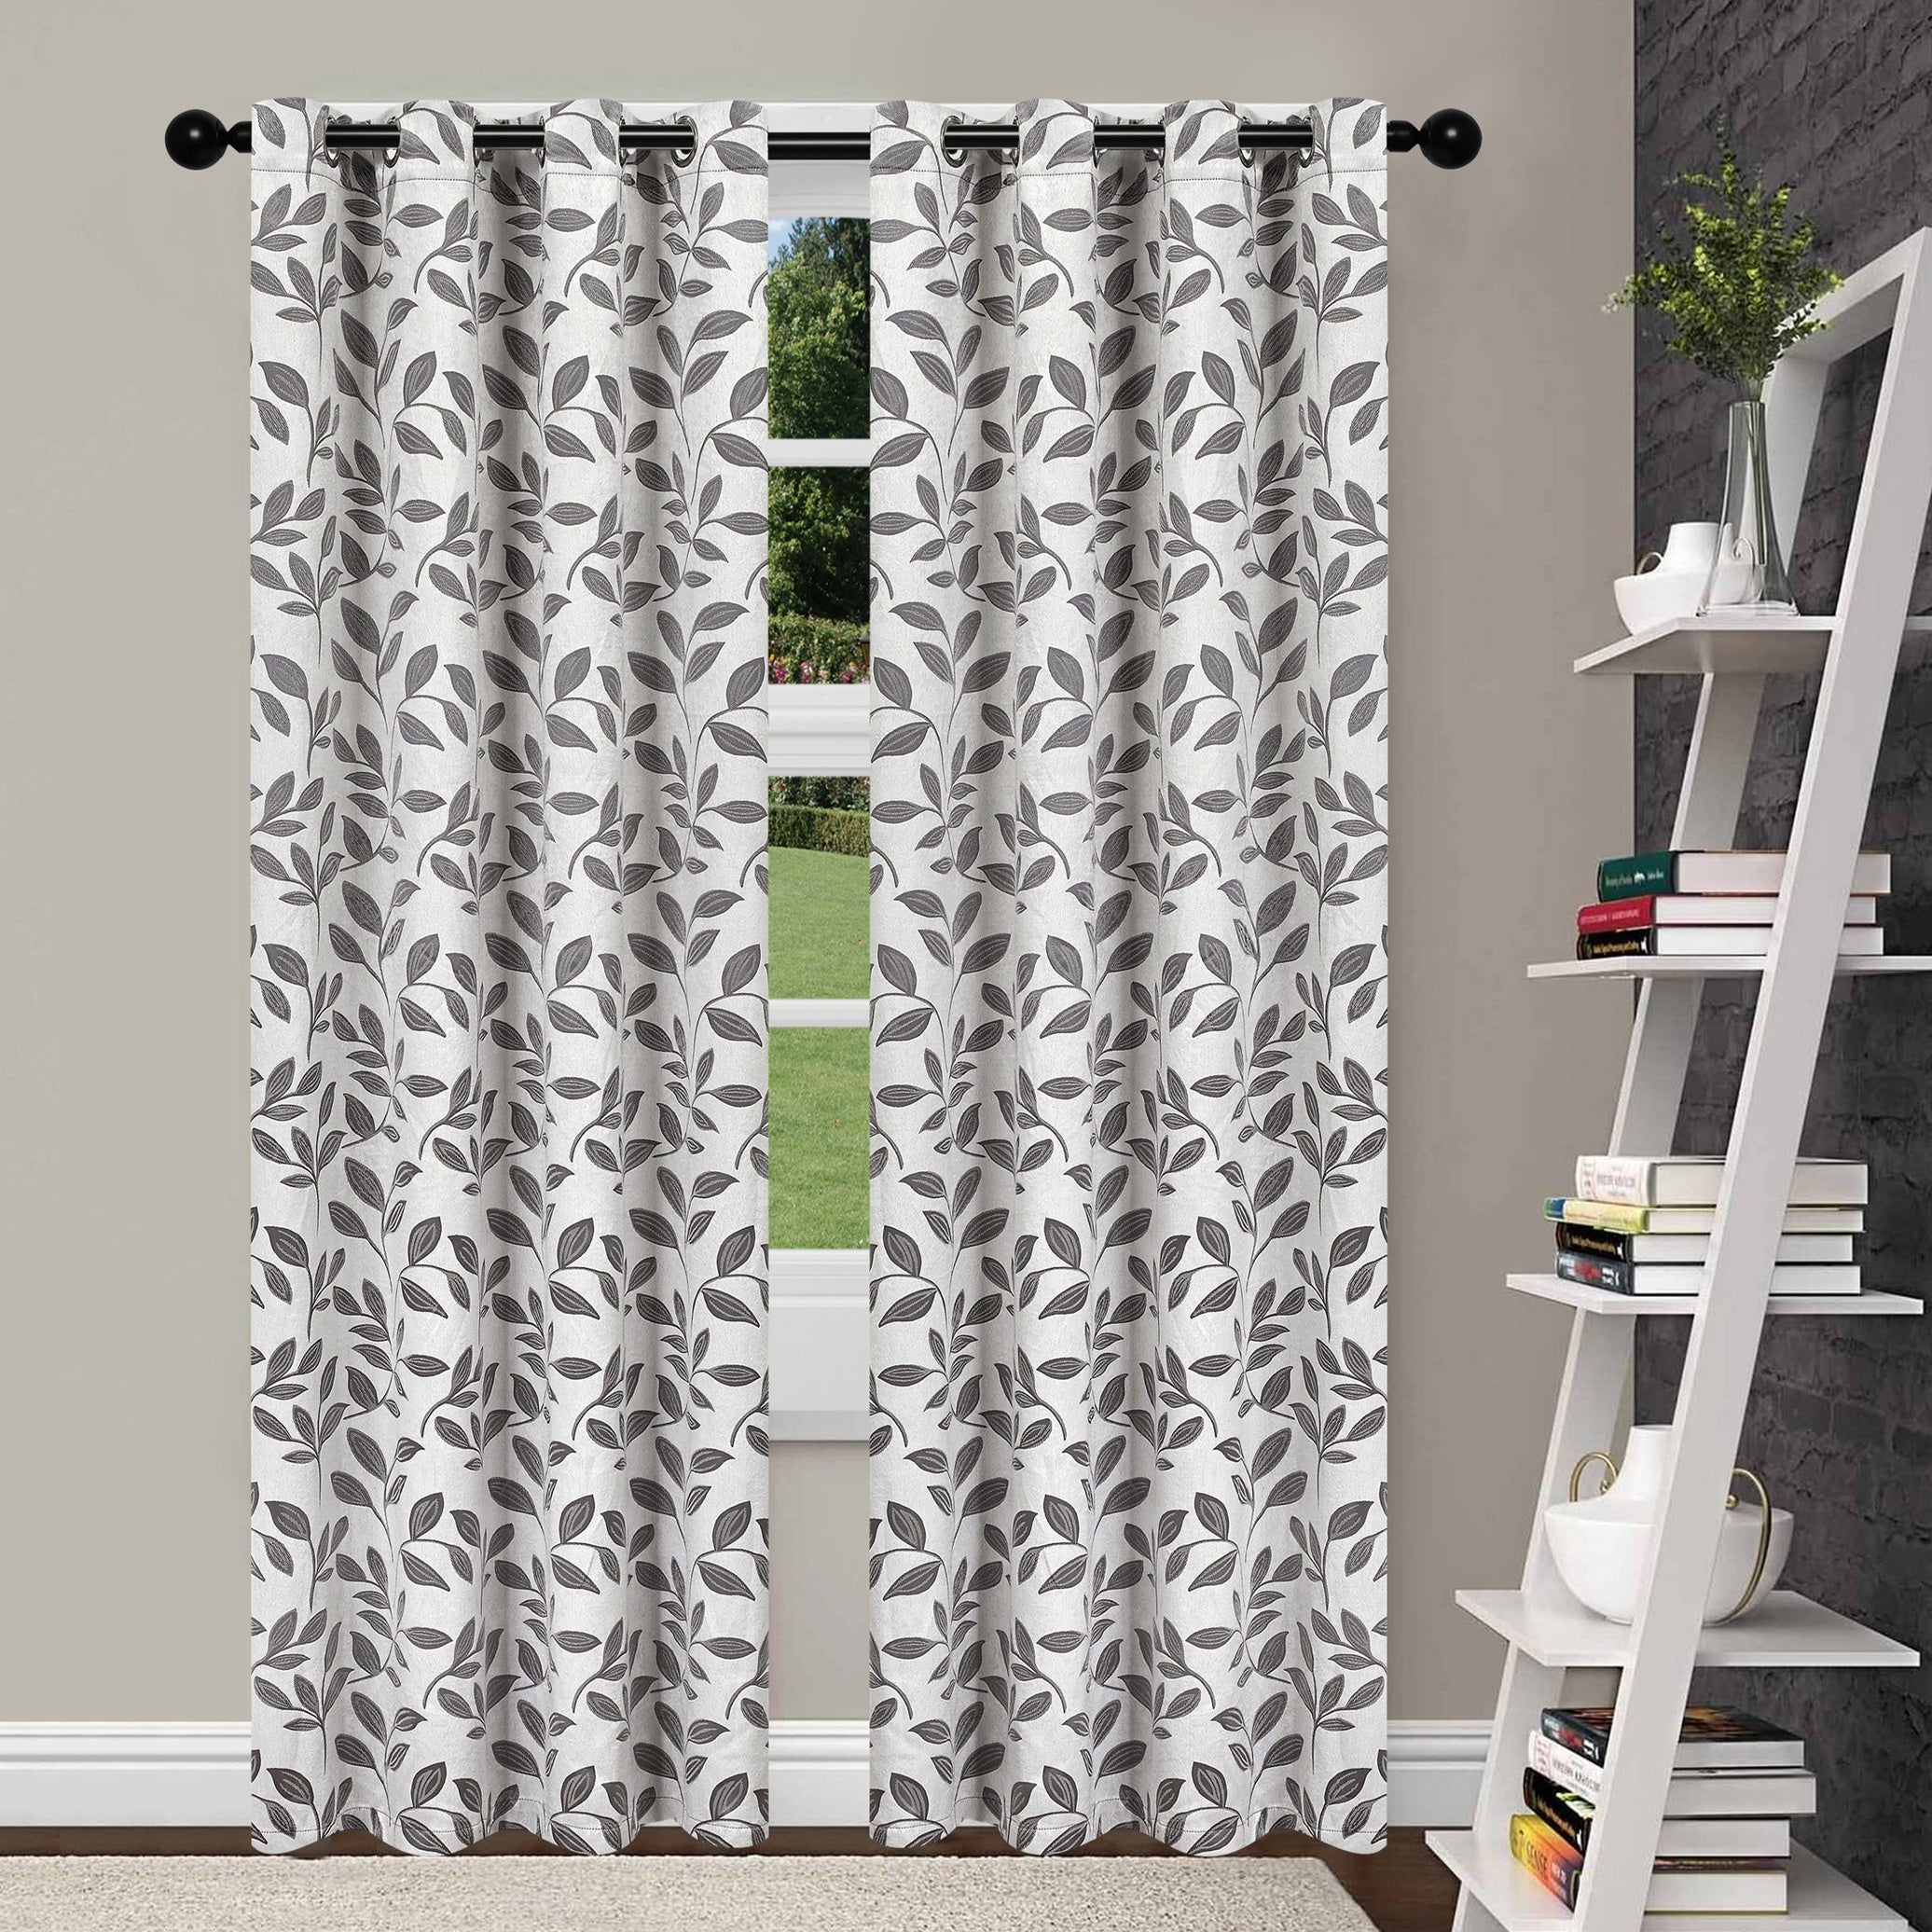 Superior Leaves Insulated Thermal Blackout Grommet Curtain Panel Pair In Superior Leaves Insulated Thermal Blackout Grommet Curtain Panel Pairs (View 2 of 30)